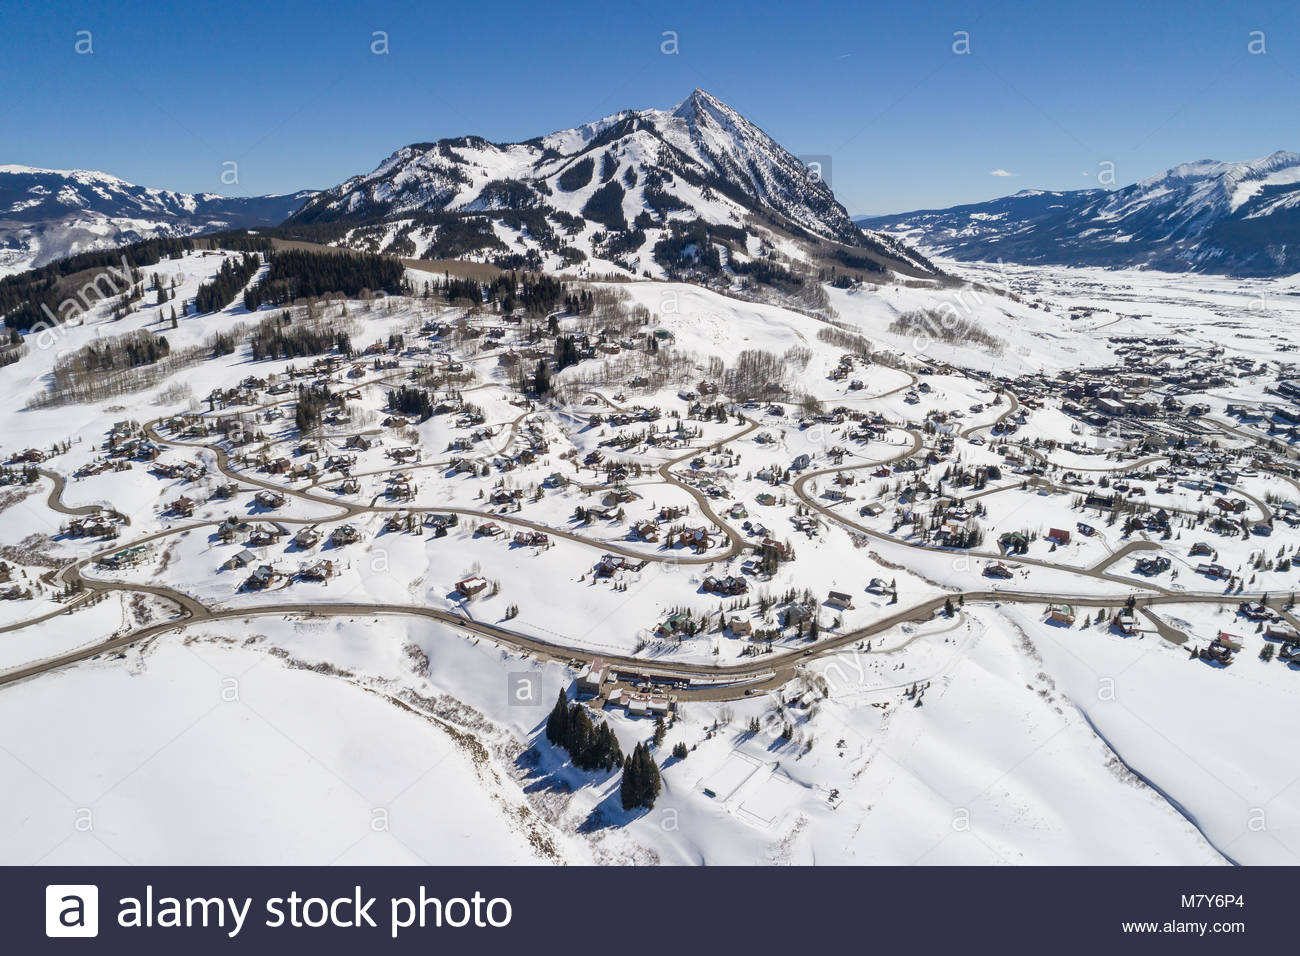 Aerial photograph of the snow-covered town of Mount Crested Butte, Colorado and Crested Butte Mountain on a winter - Stock Image